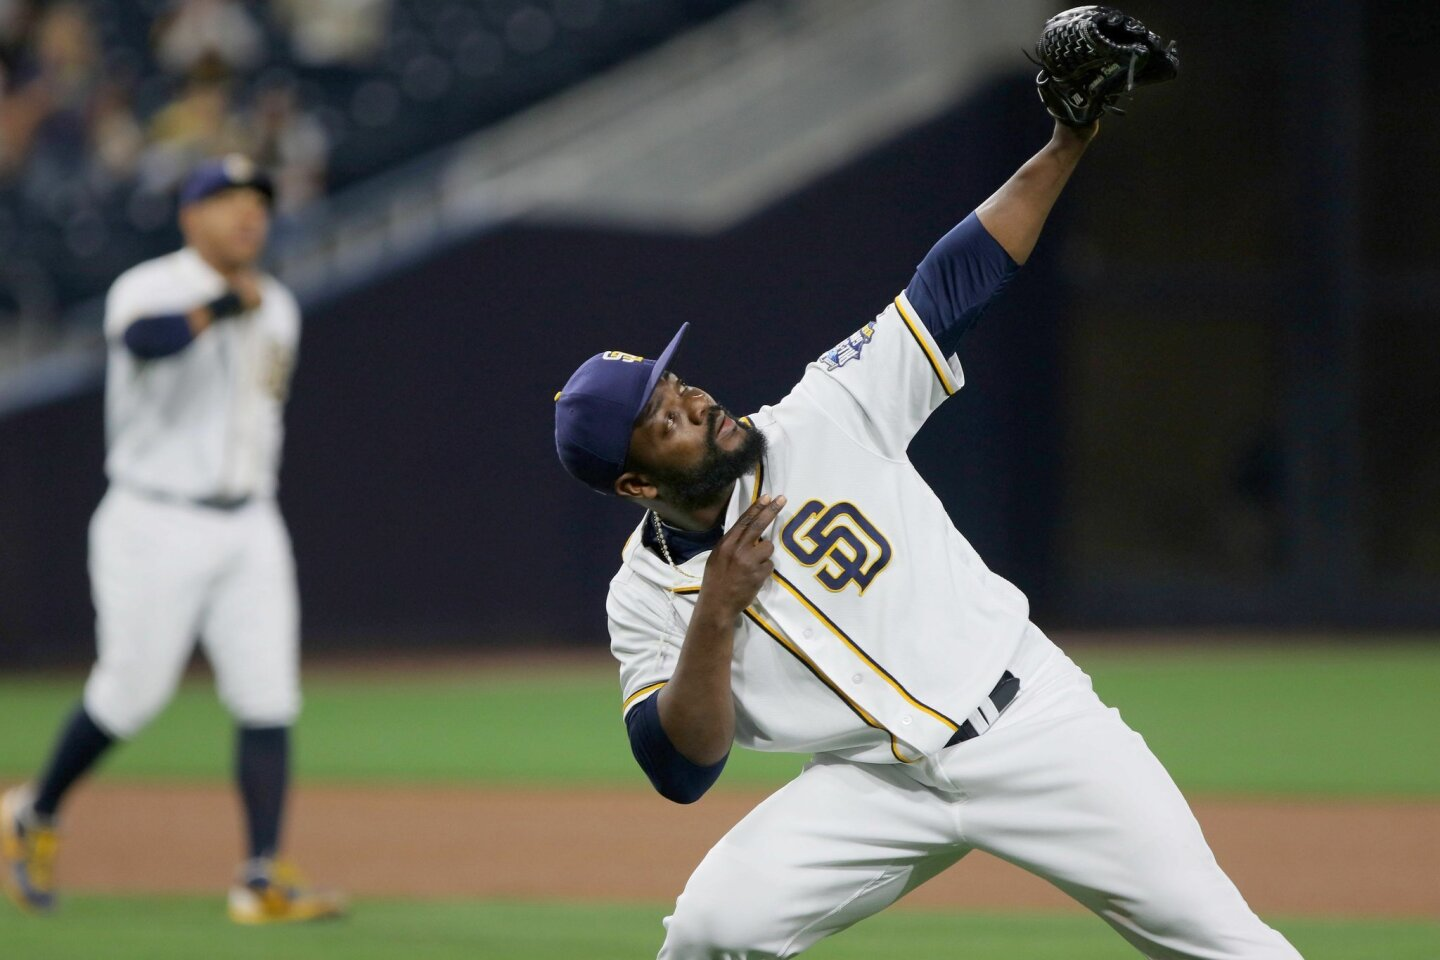 Padres' closer Fernando Rodney gestures to the sky after the Rockies final batter Trevor Story flies out.